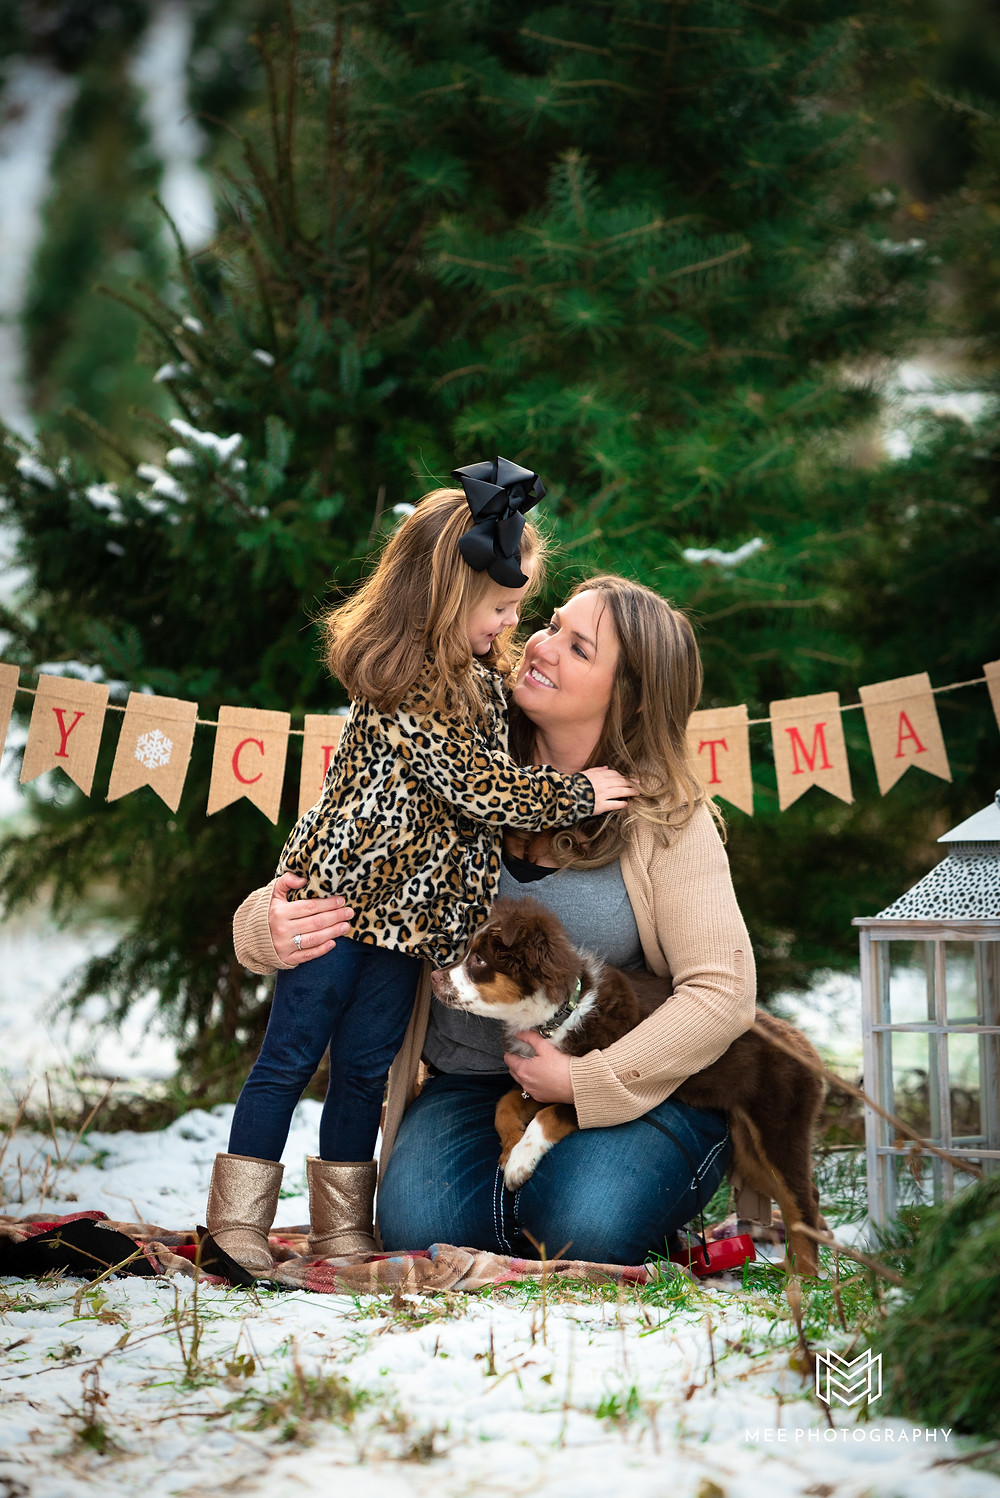 Windy Hill Tree Farms family Christmas mini photo session with a mother and daughter and their new puppy.